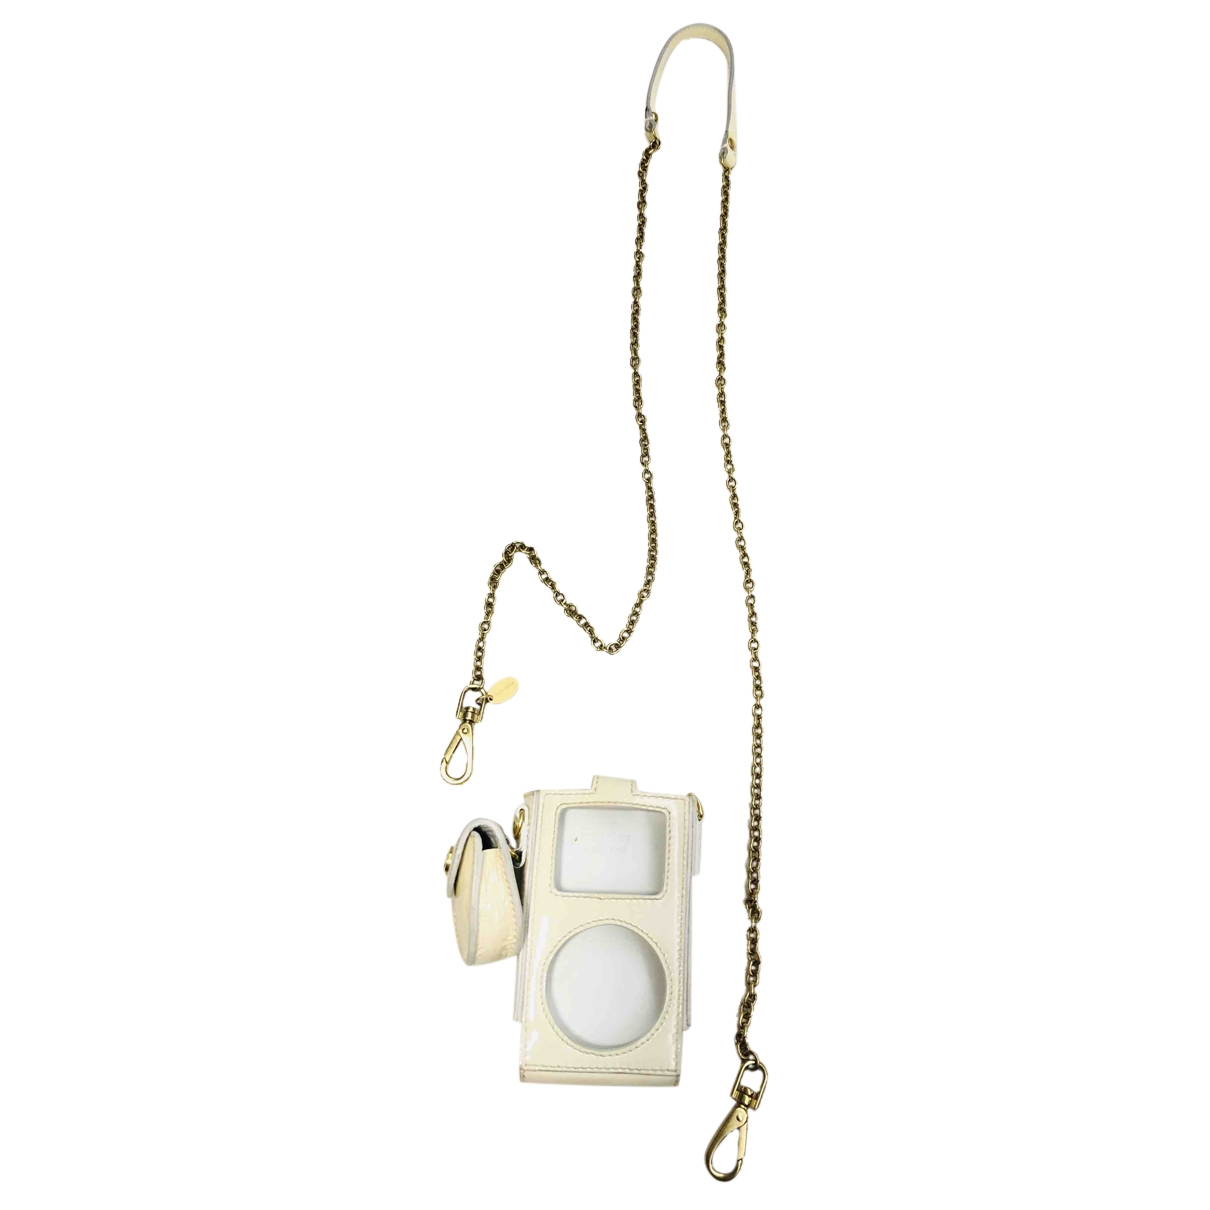 Miu Miu \N White Leather Accessories for Life & Living \N